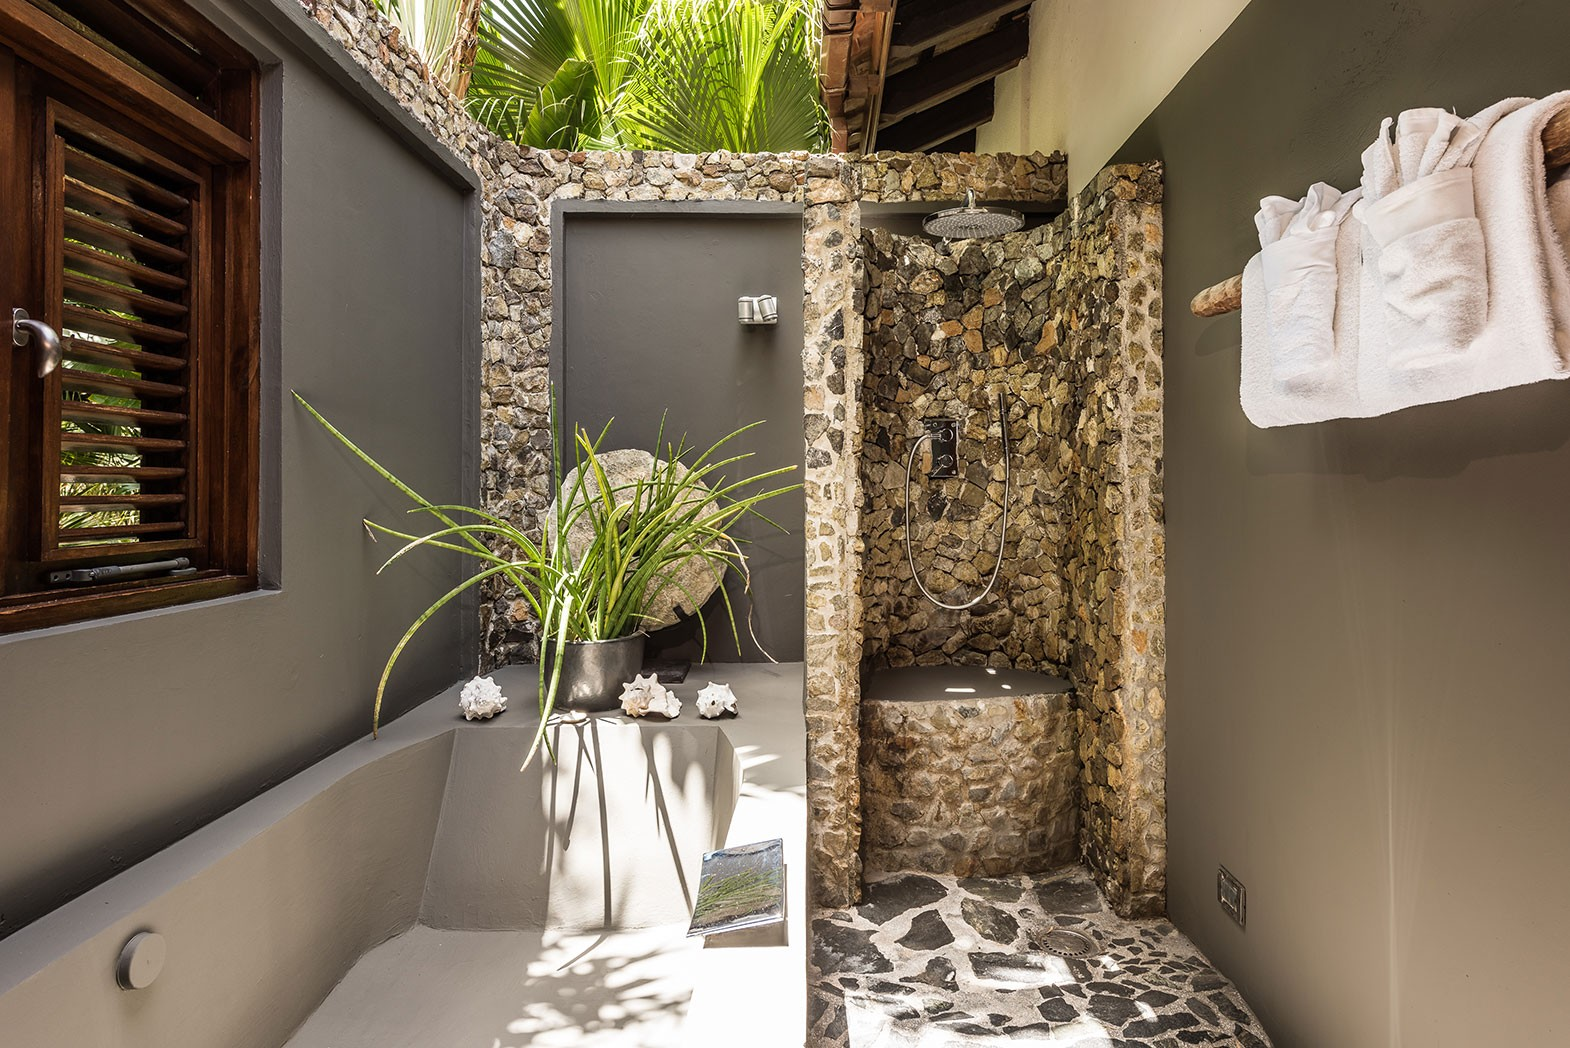 Banyan-Tree-outdoor-bathroom